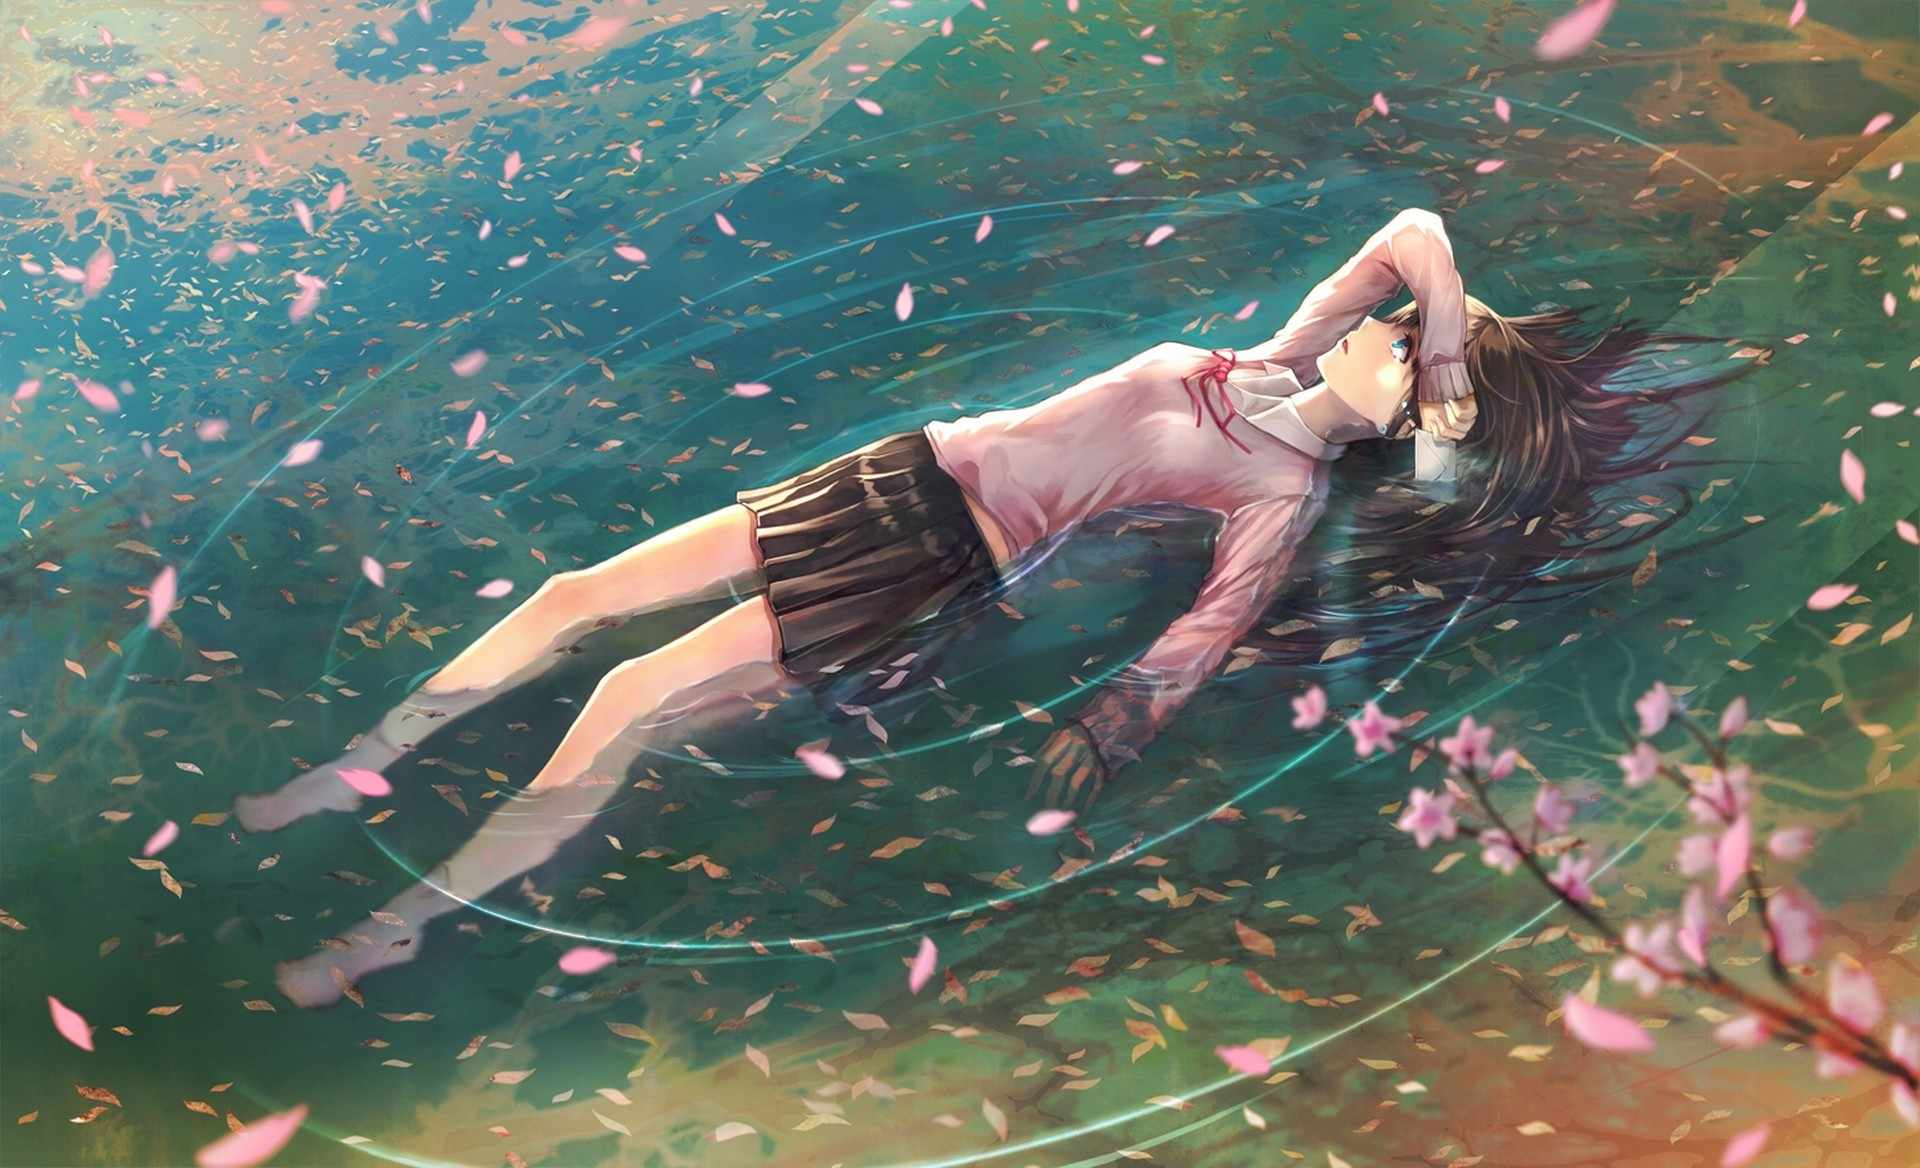 1920x1168 School Uniforms Anime Girls Floating Water Cherry Blossom